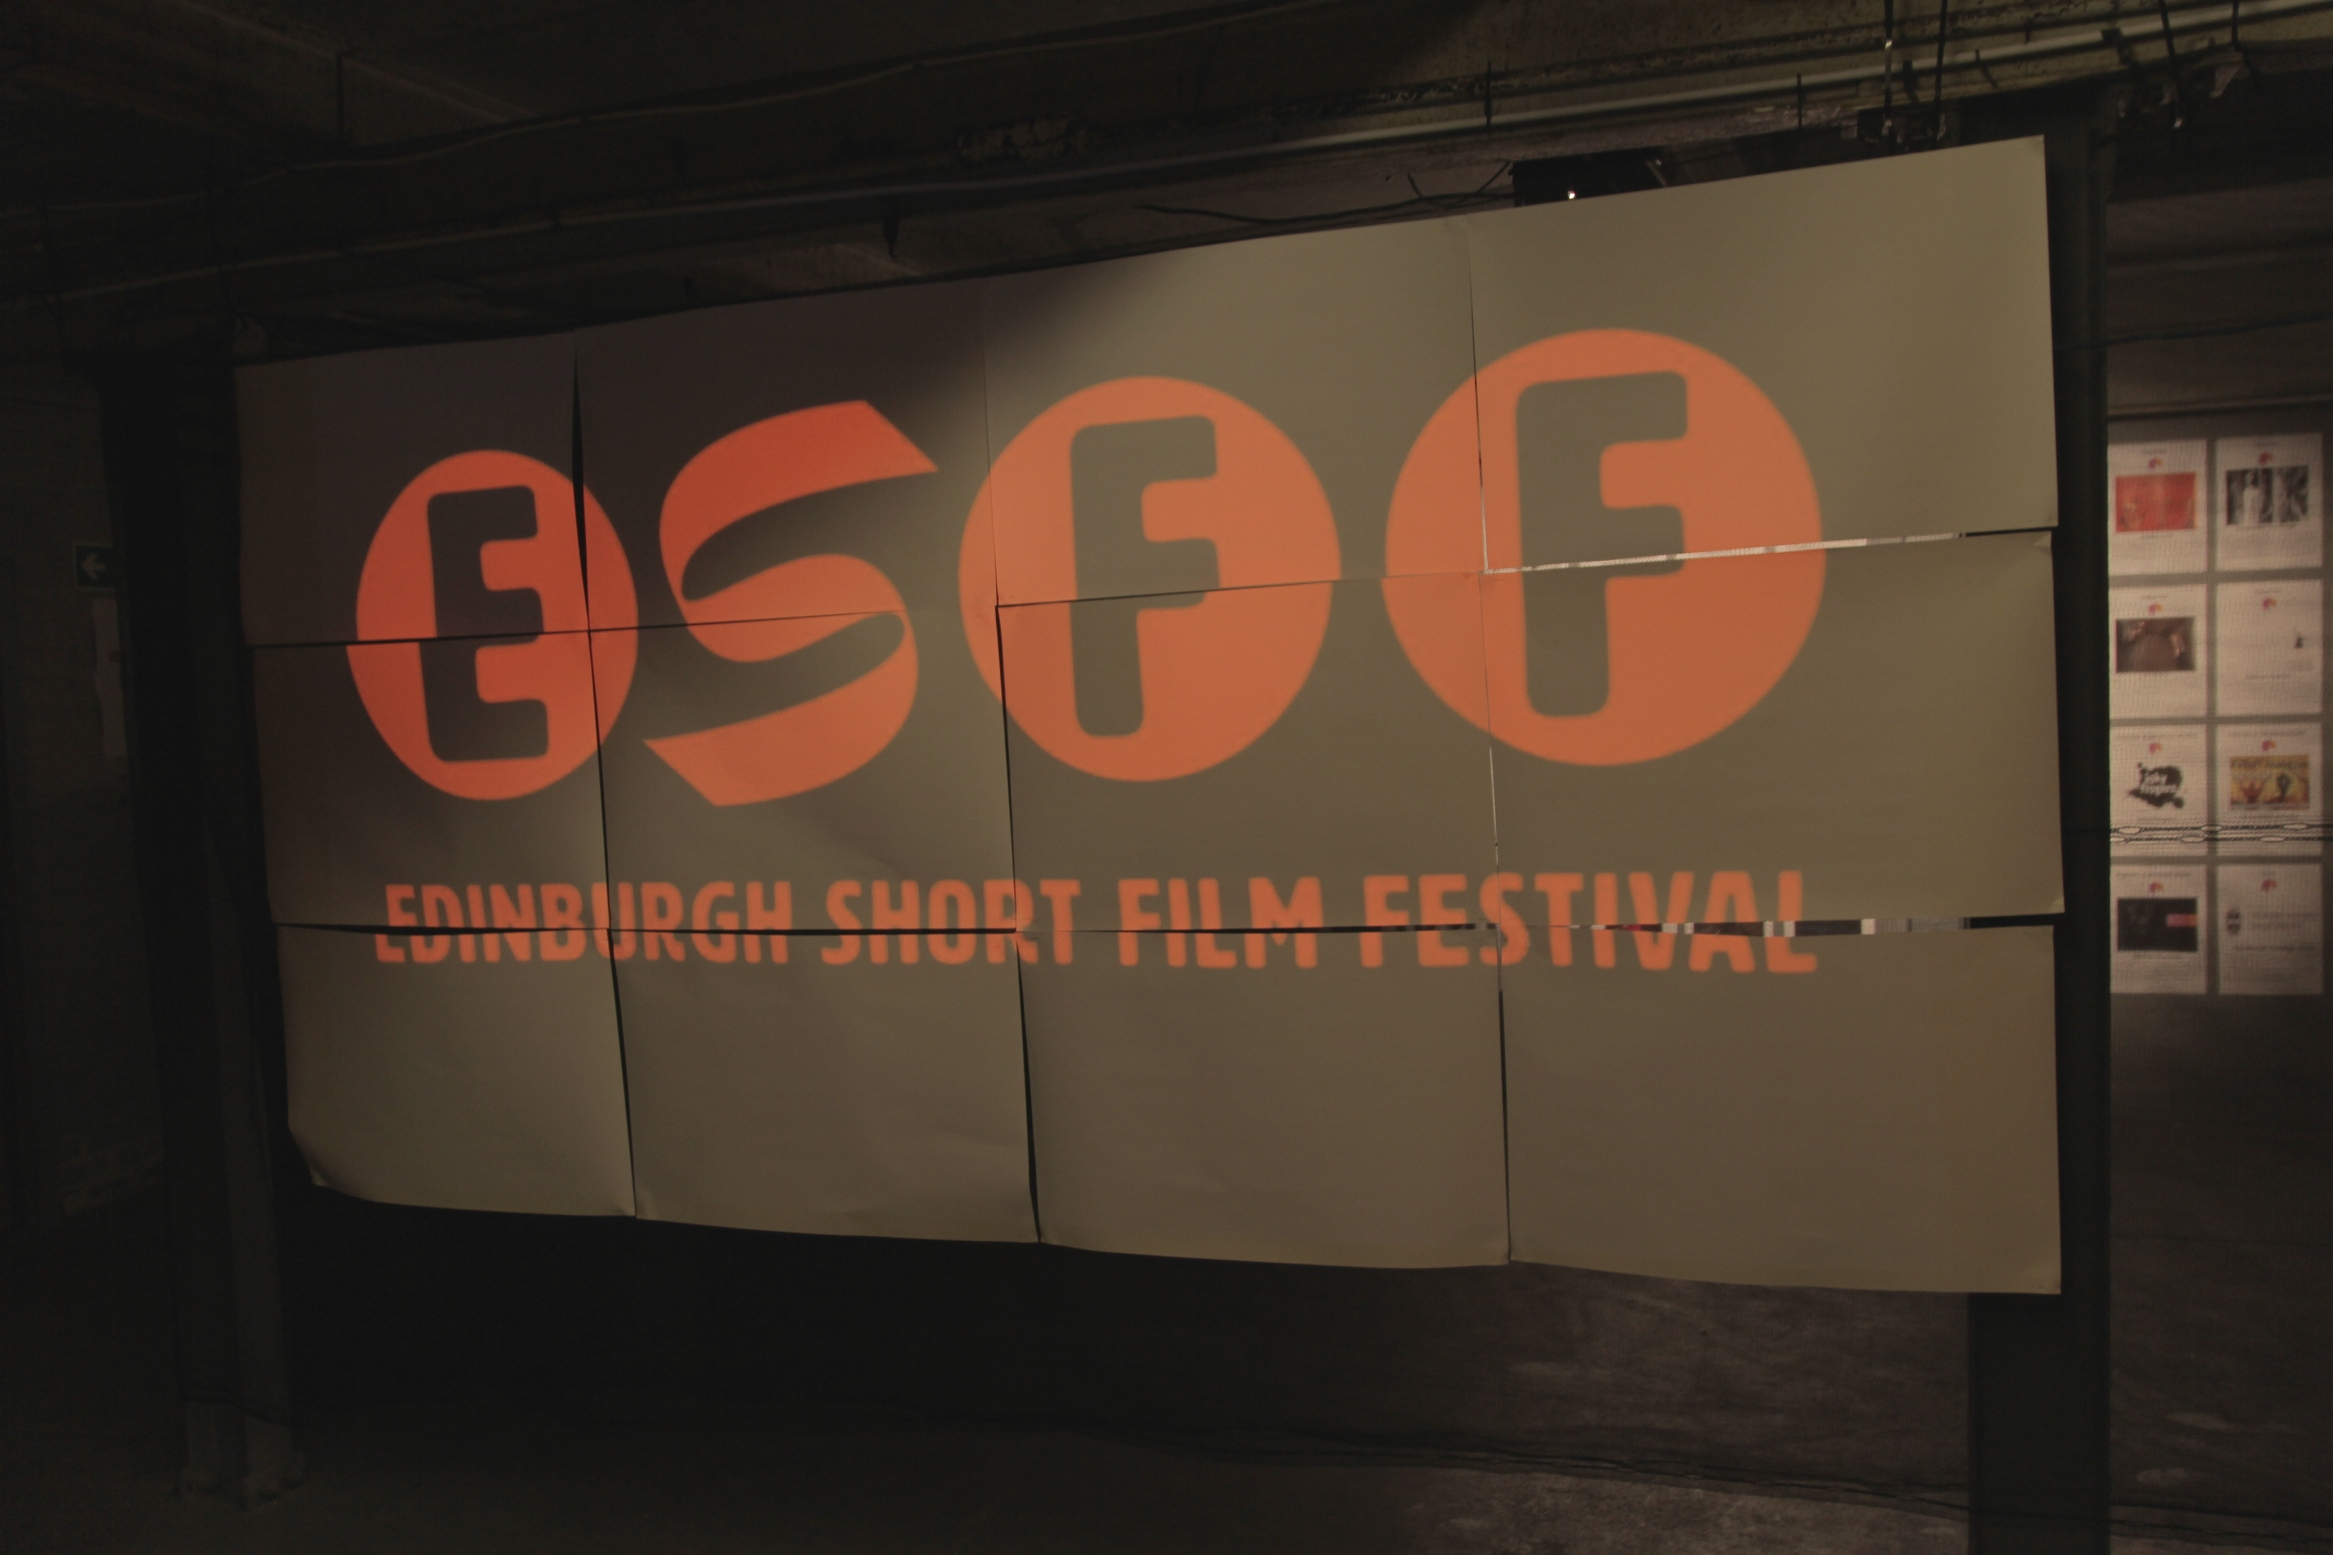 EDINBURGH SHORT FILM FESTIVAL AT HIDDEN DOOR ARTS FESTIVAL 2017